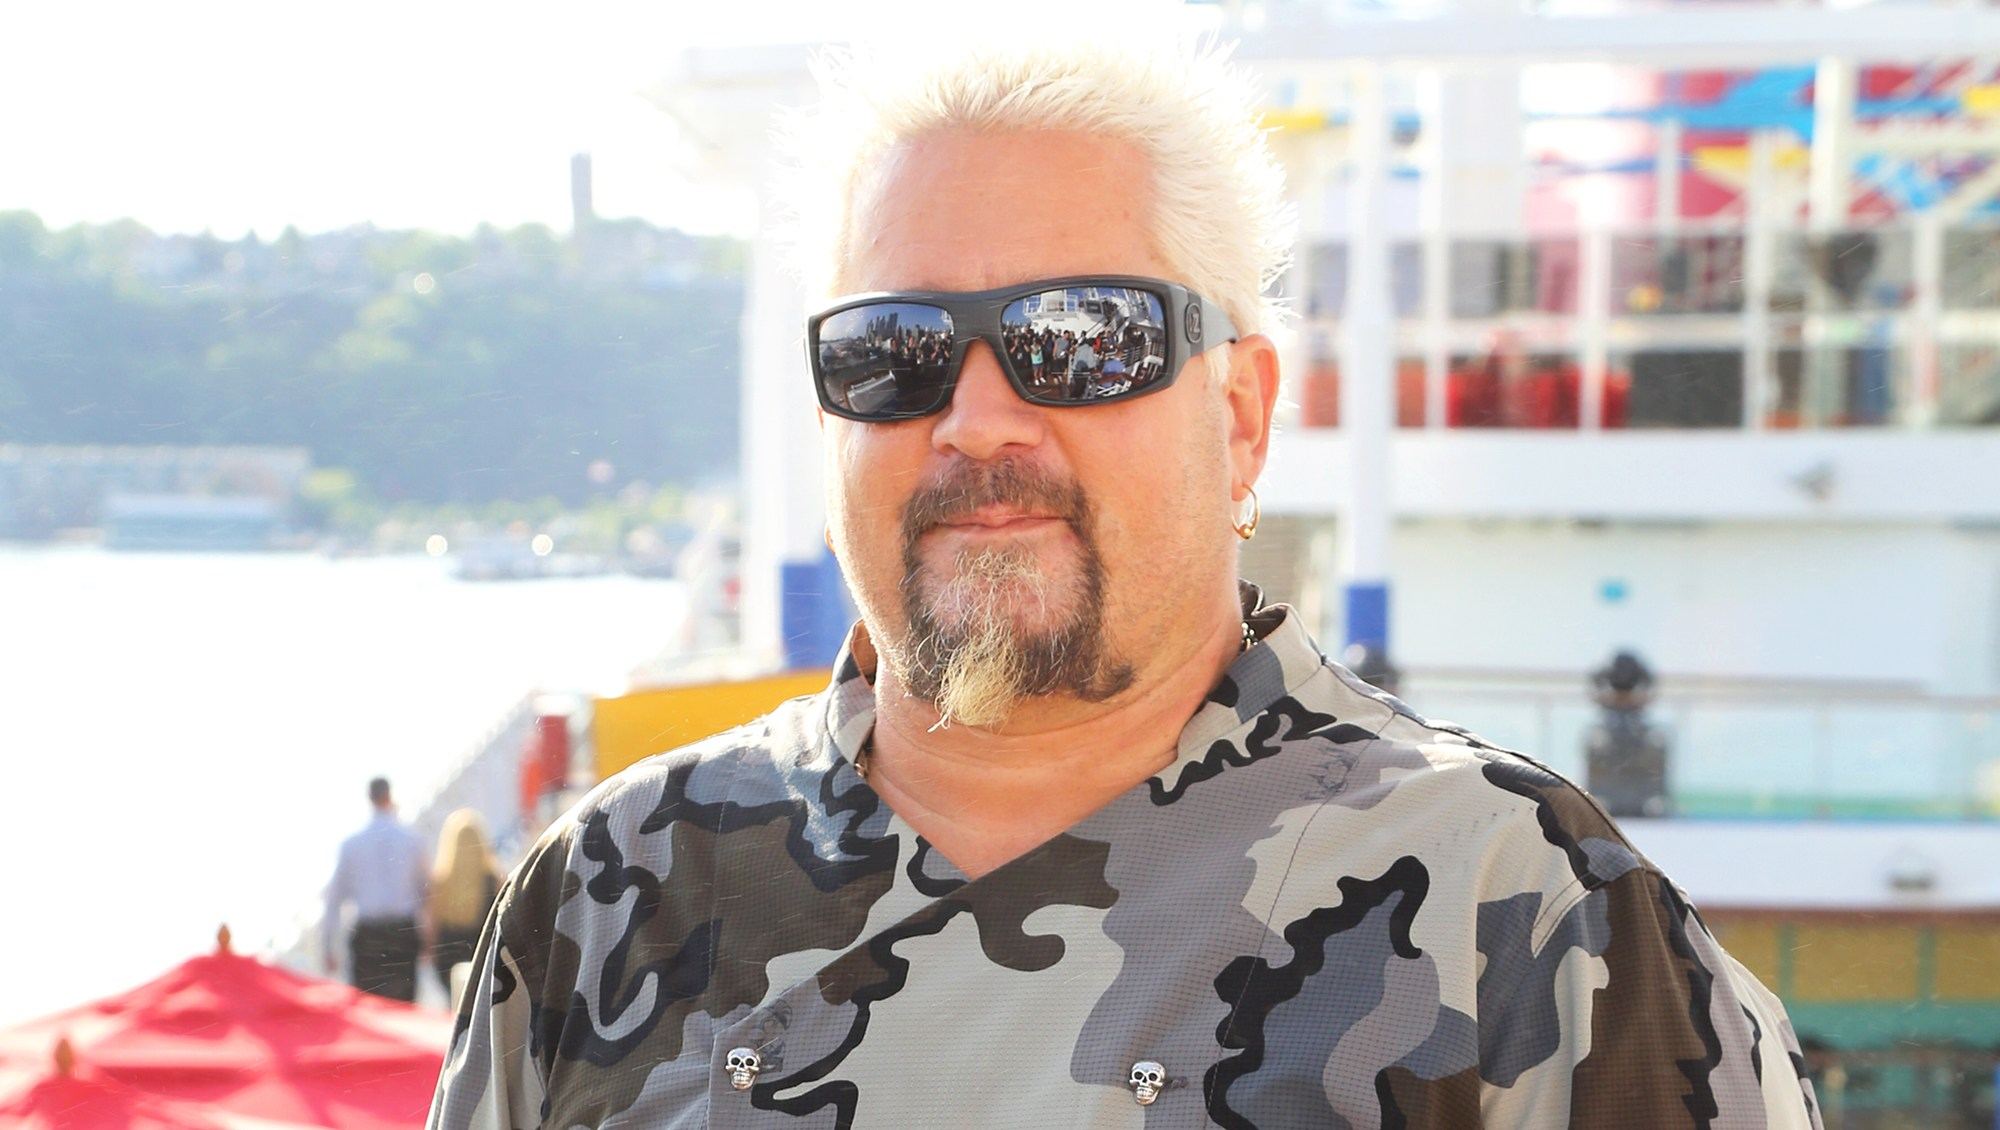 Guy Fieri attends Carnival Horizon naming ceremony event at Pier 88 on May 23, 2018 in New York City.